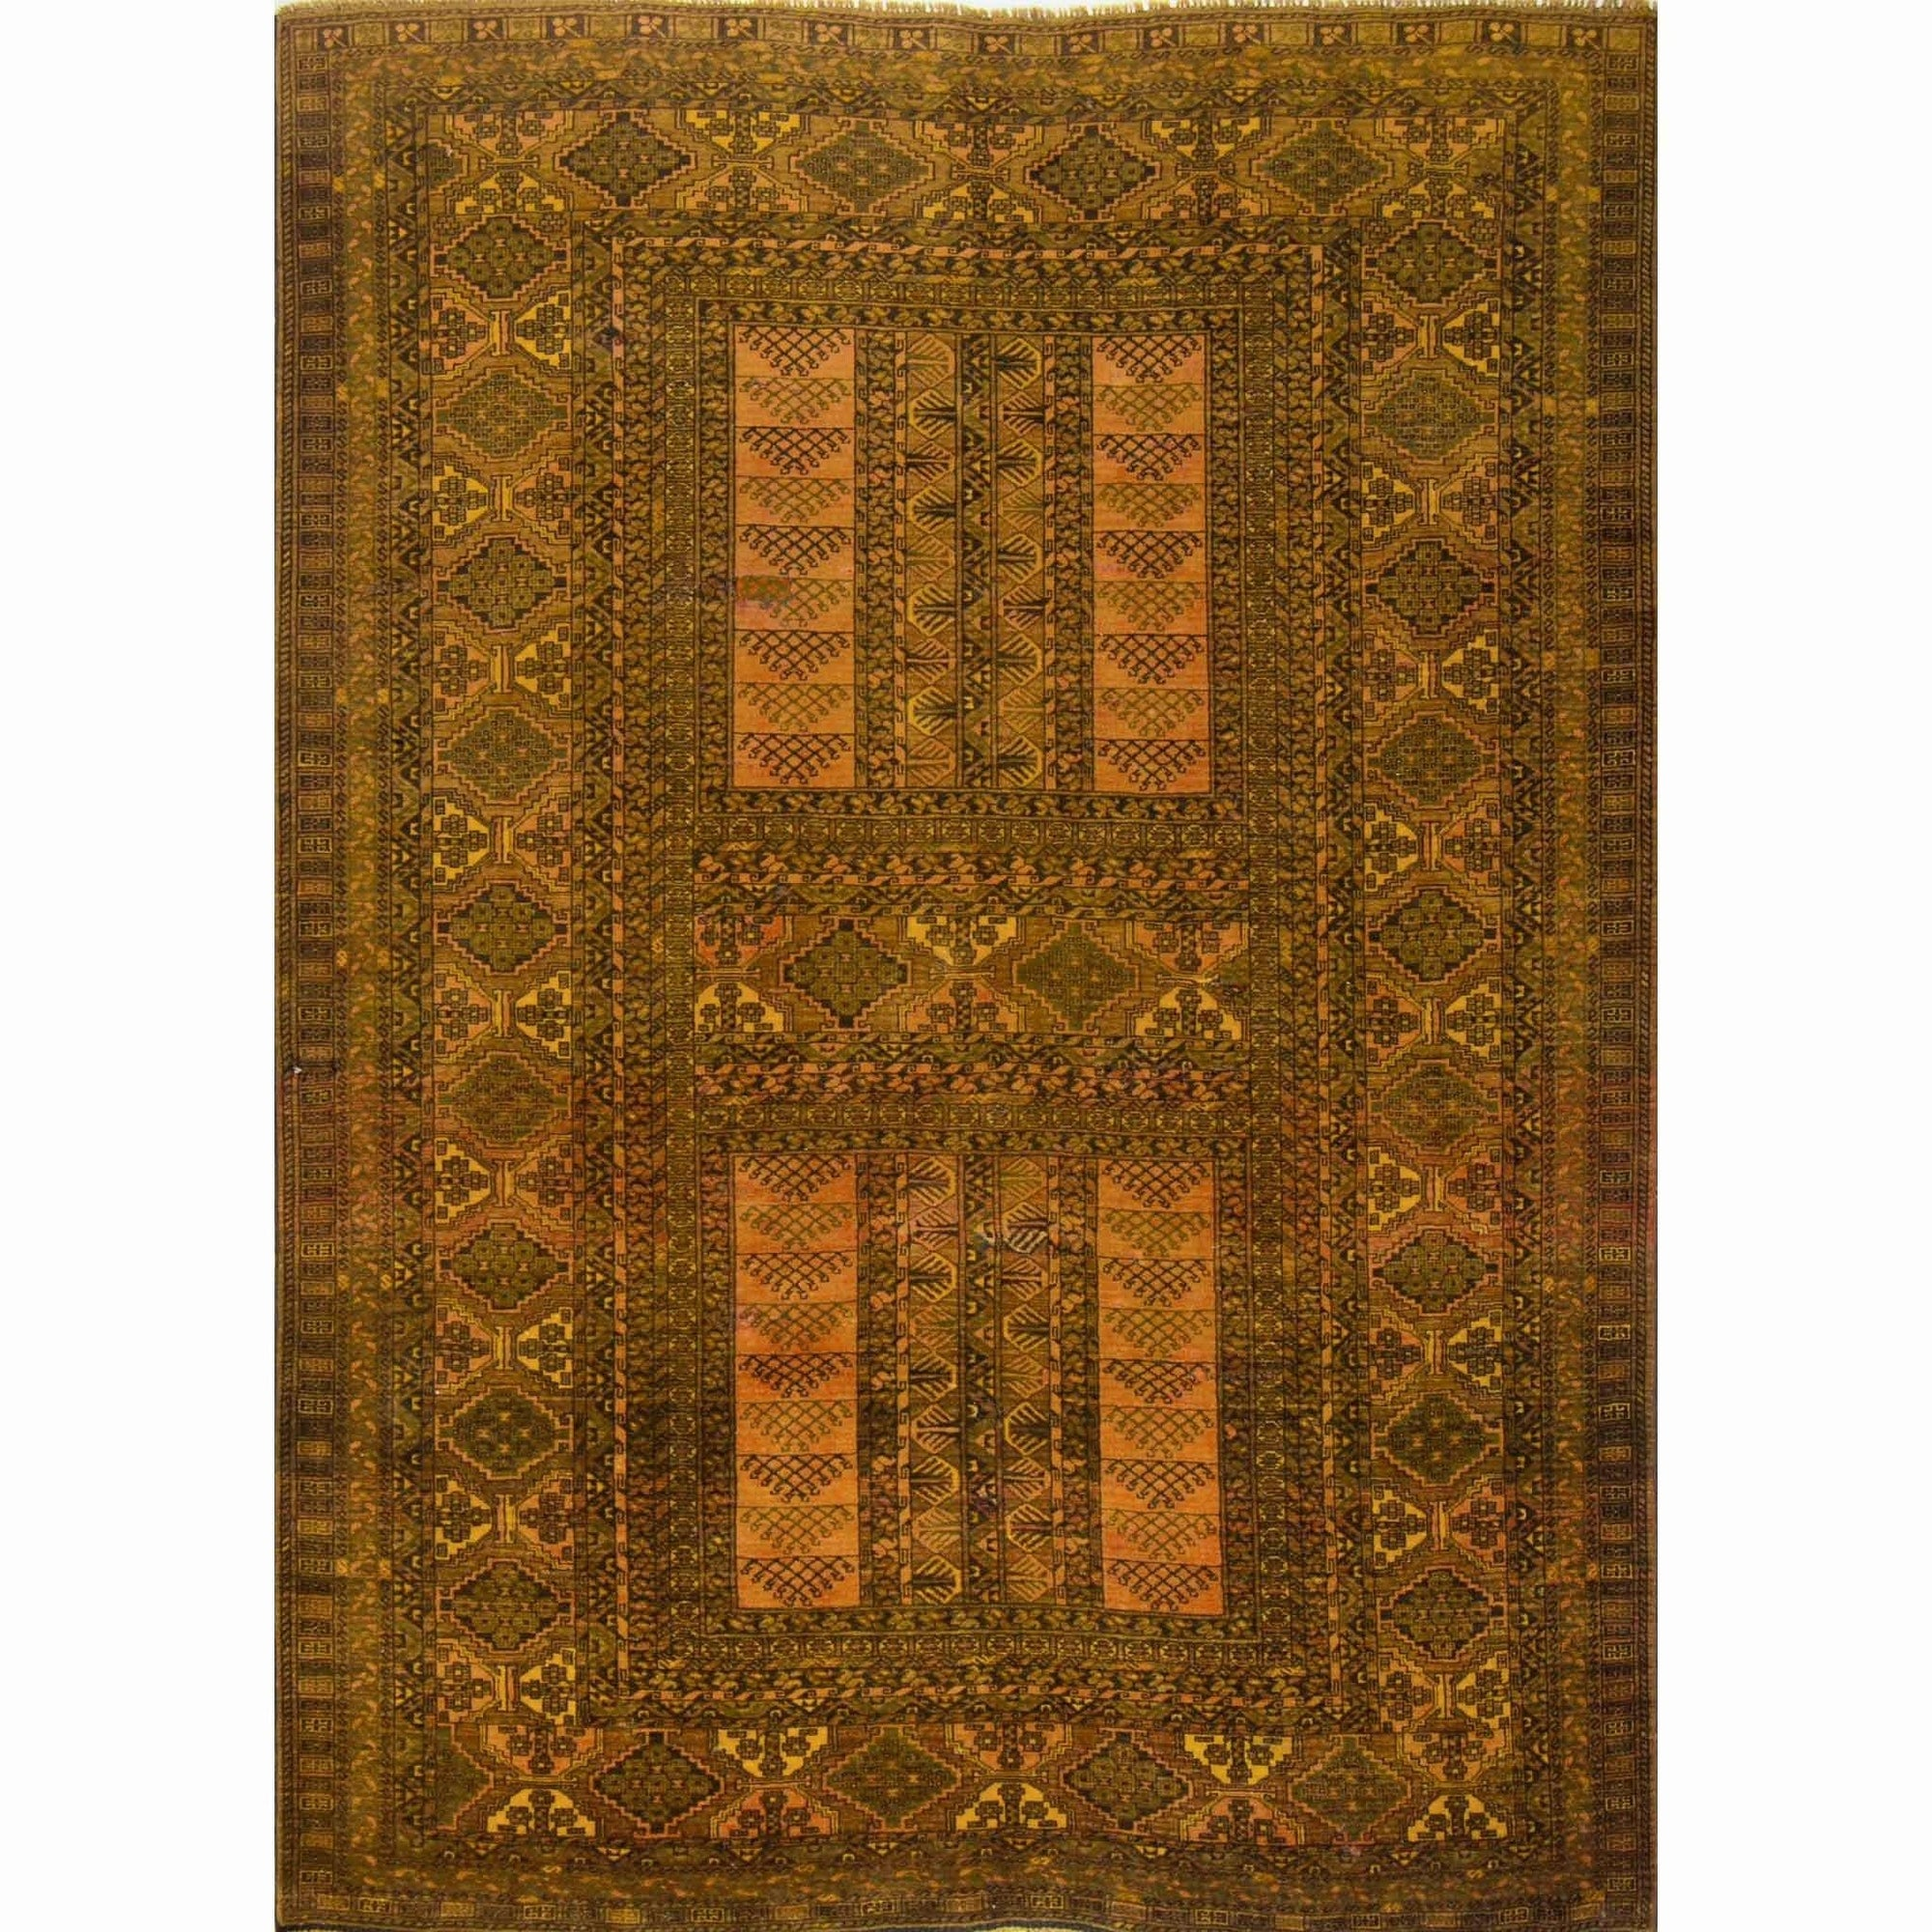 Antique Tribal Afghan Hand-knotted 100% Wool Turkmen Rug 164cm x 228cm Persian-Rug | House-of-Haghi | NewMarket | Auckland | NZ | Handmade Persian Rugs | Hand Knotted Persian Rugs